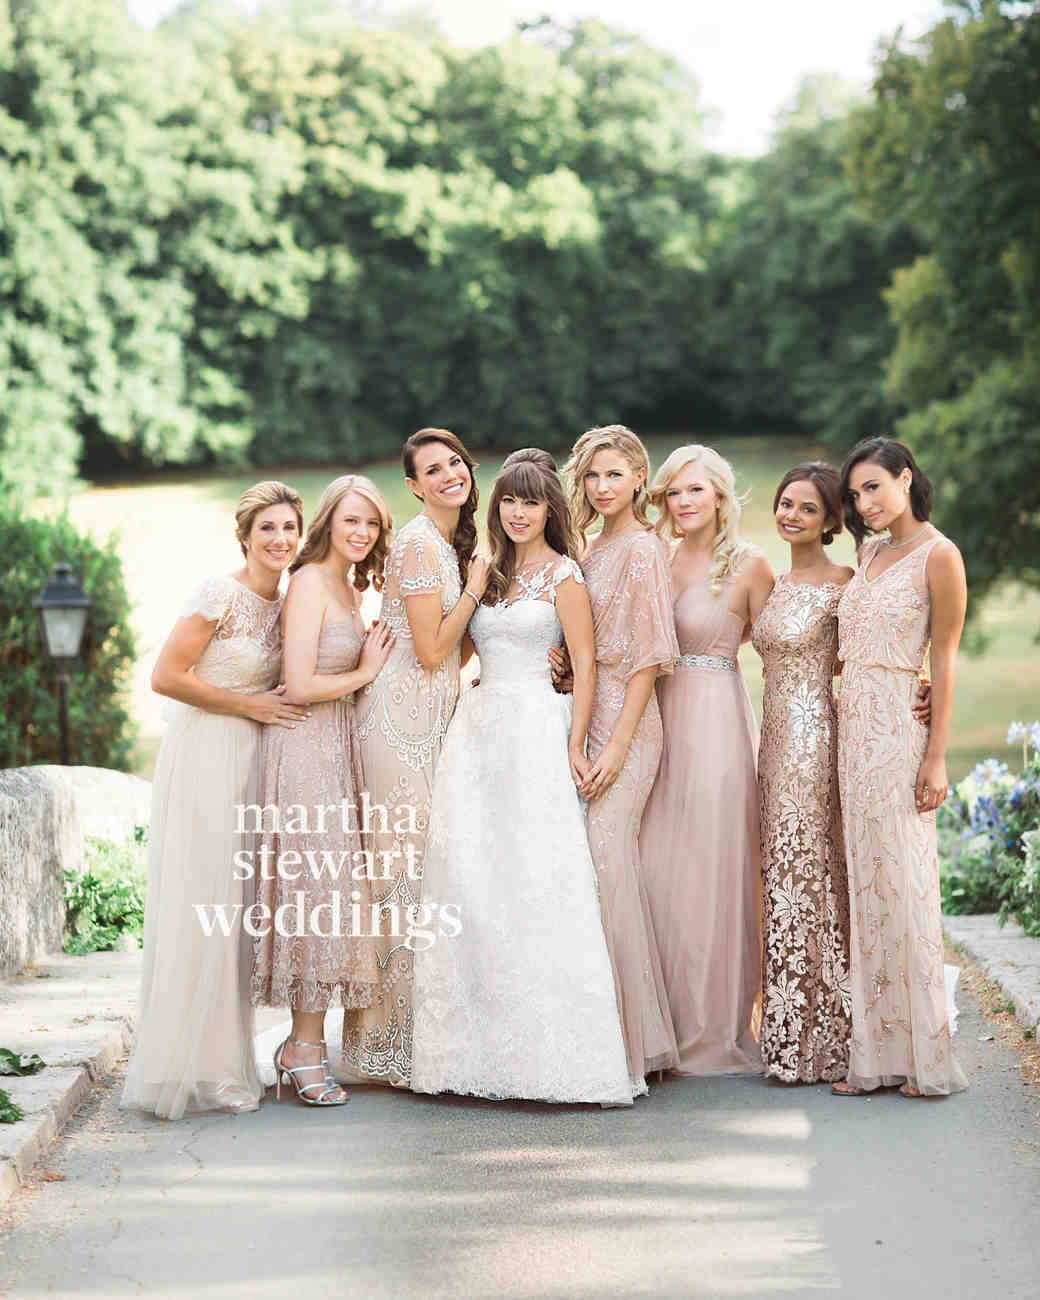 16 looks that prove bridesmaid dresses can be chic martha 16 looks that prove bridesmaid dresses can be chic martha stewart weddings ombrellifo Image collections